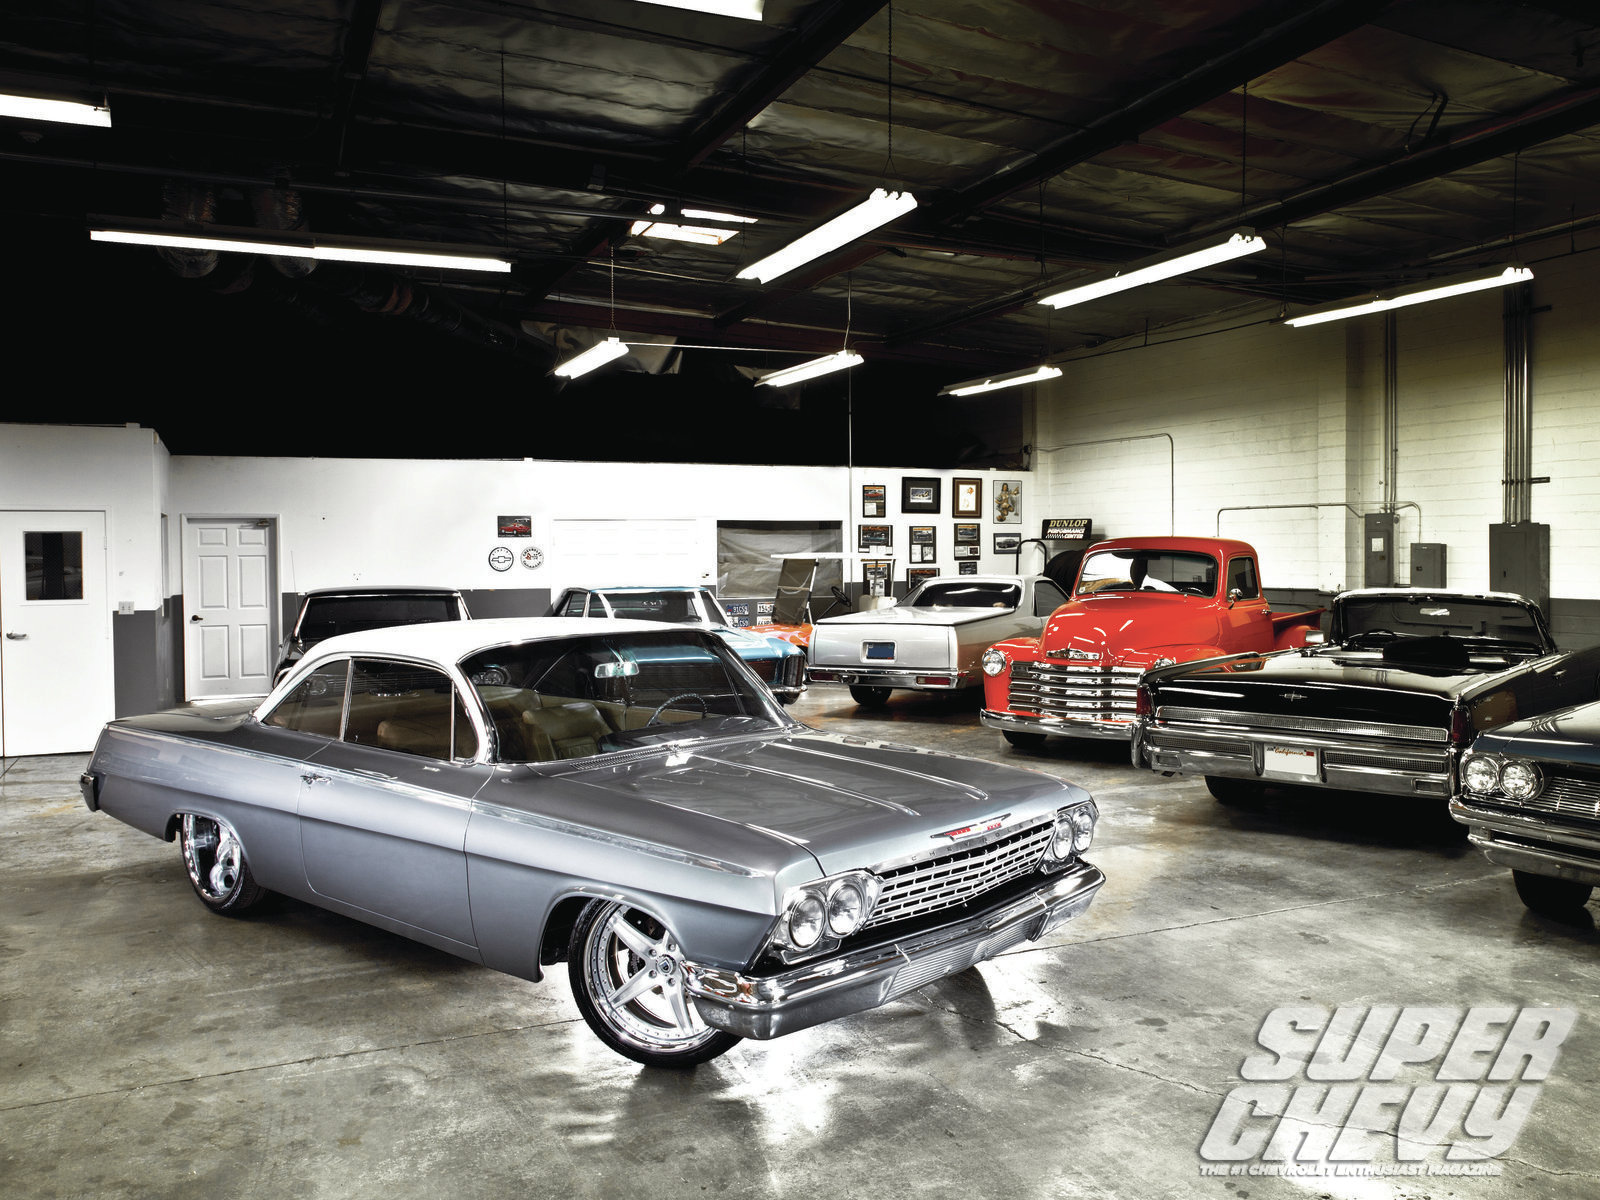 Vehicles - Chevrolet  Wallpaper